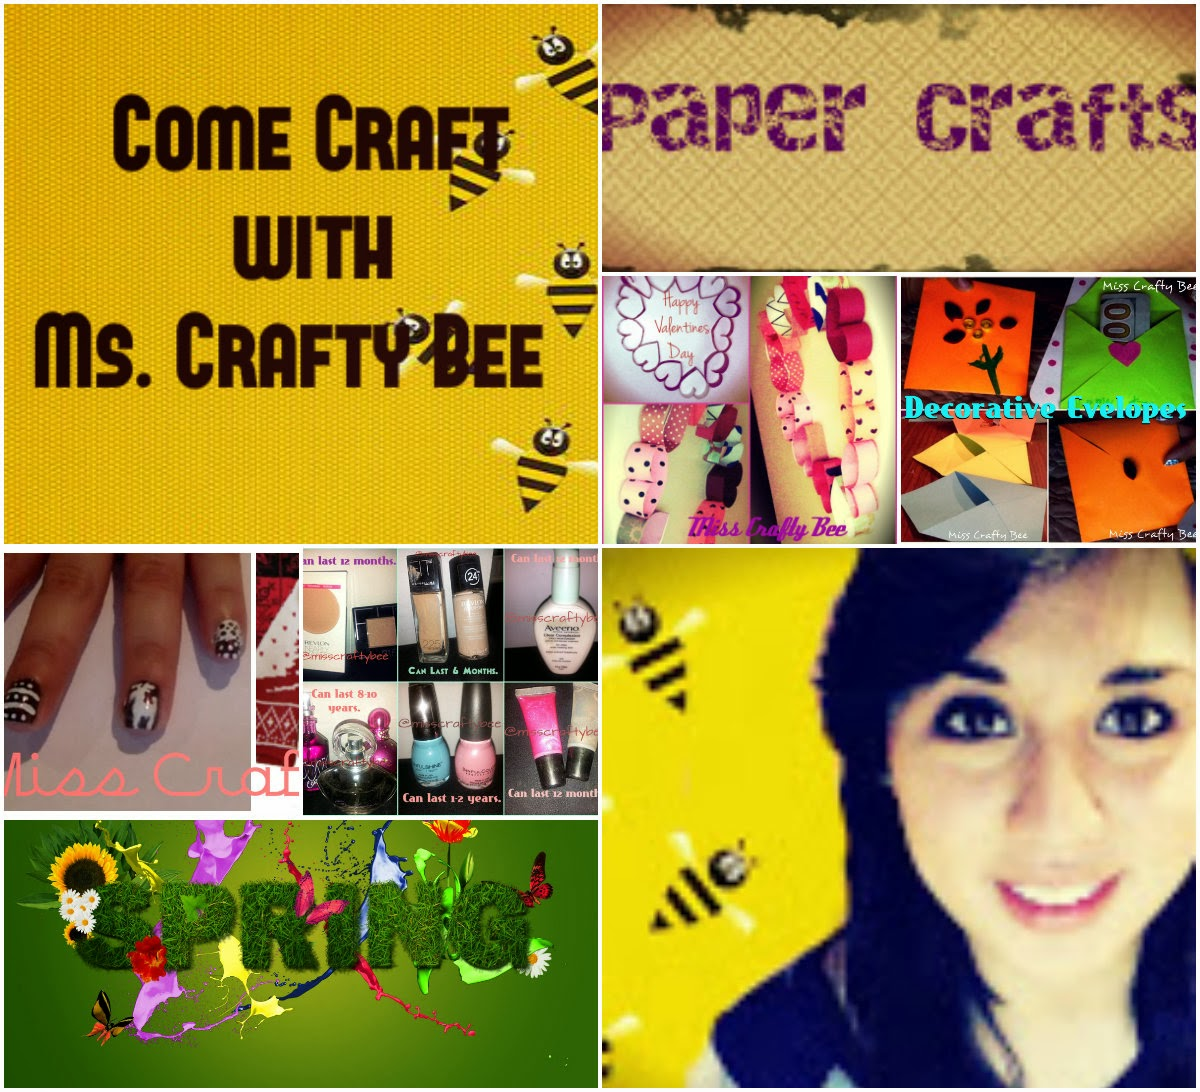 Ms. Crafty Bee